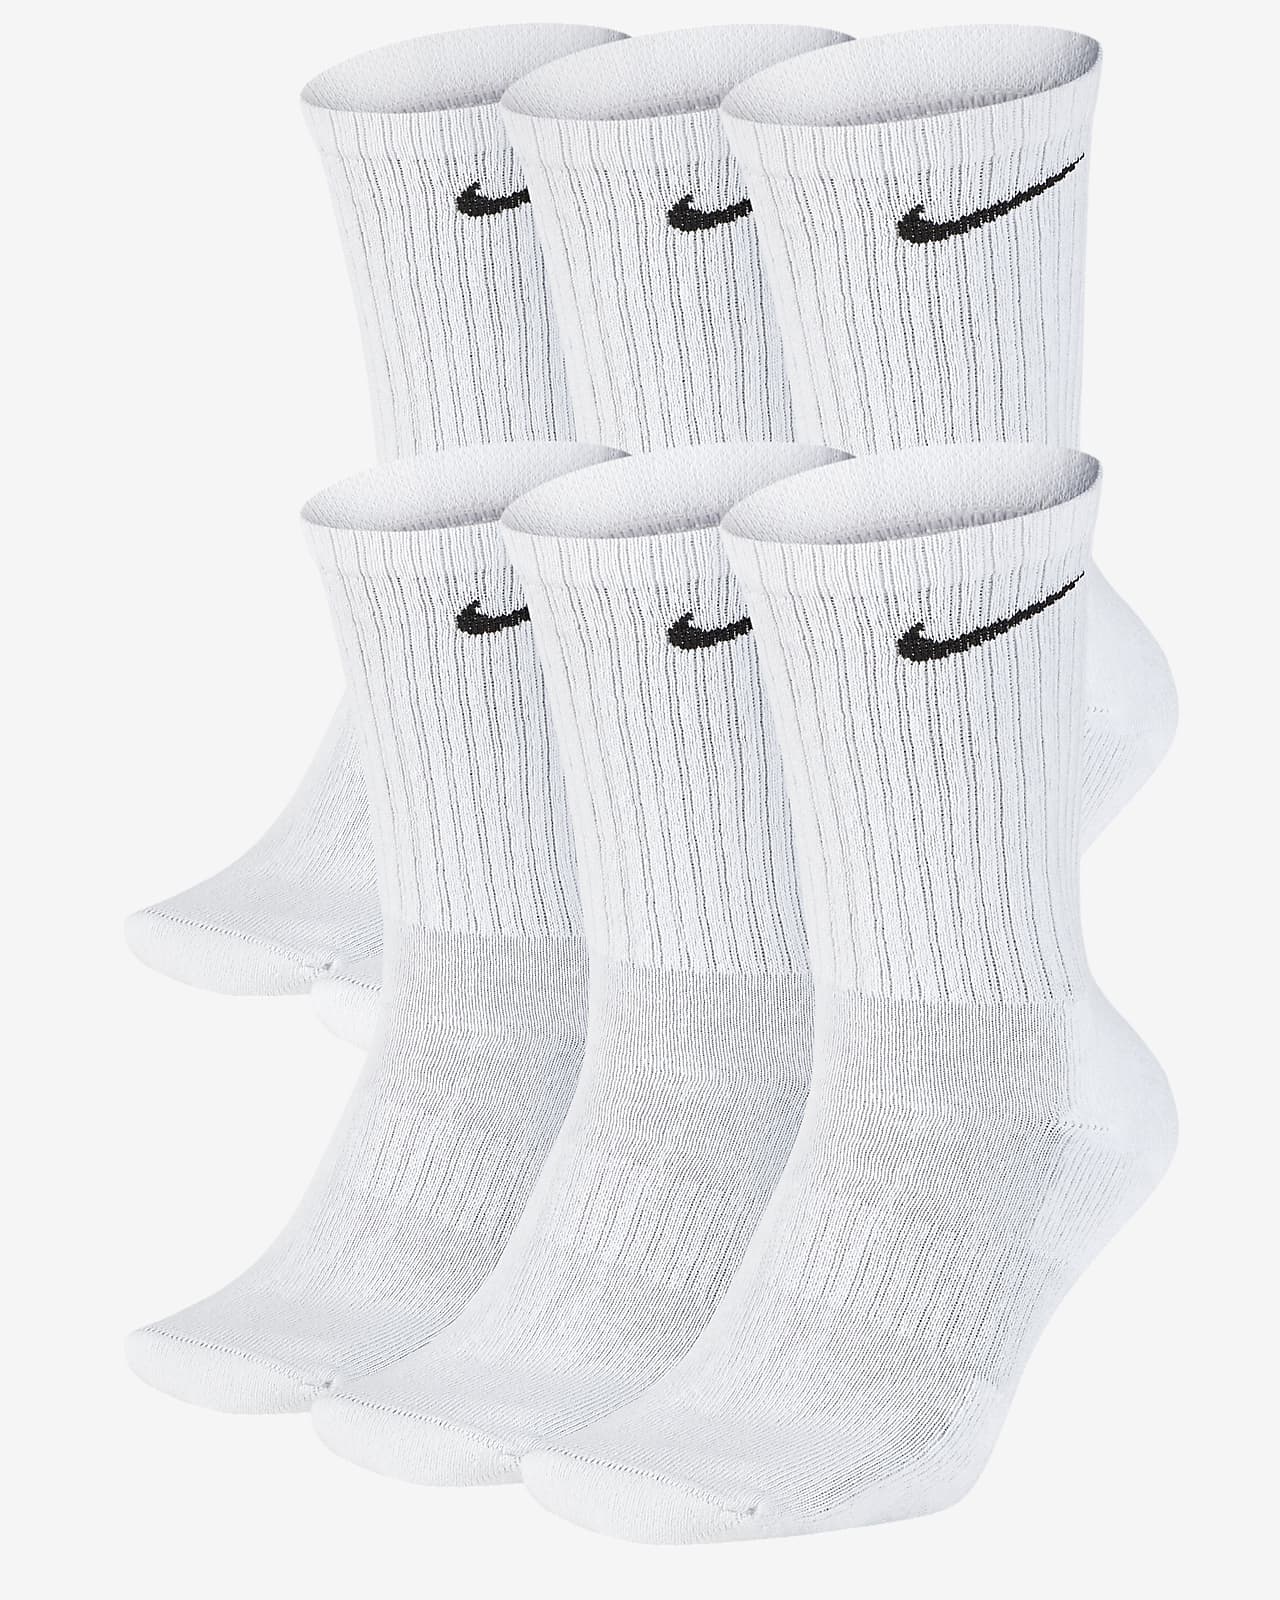 Chaussettes de training mi-mollet Nike Everyday Cushioned (6 paires)